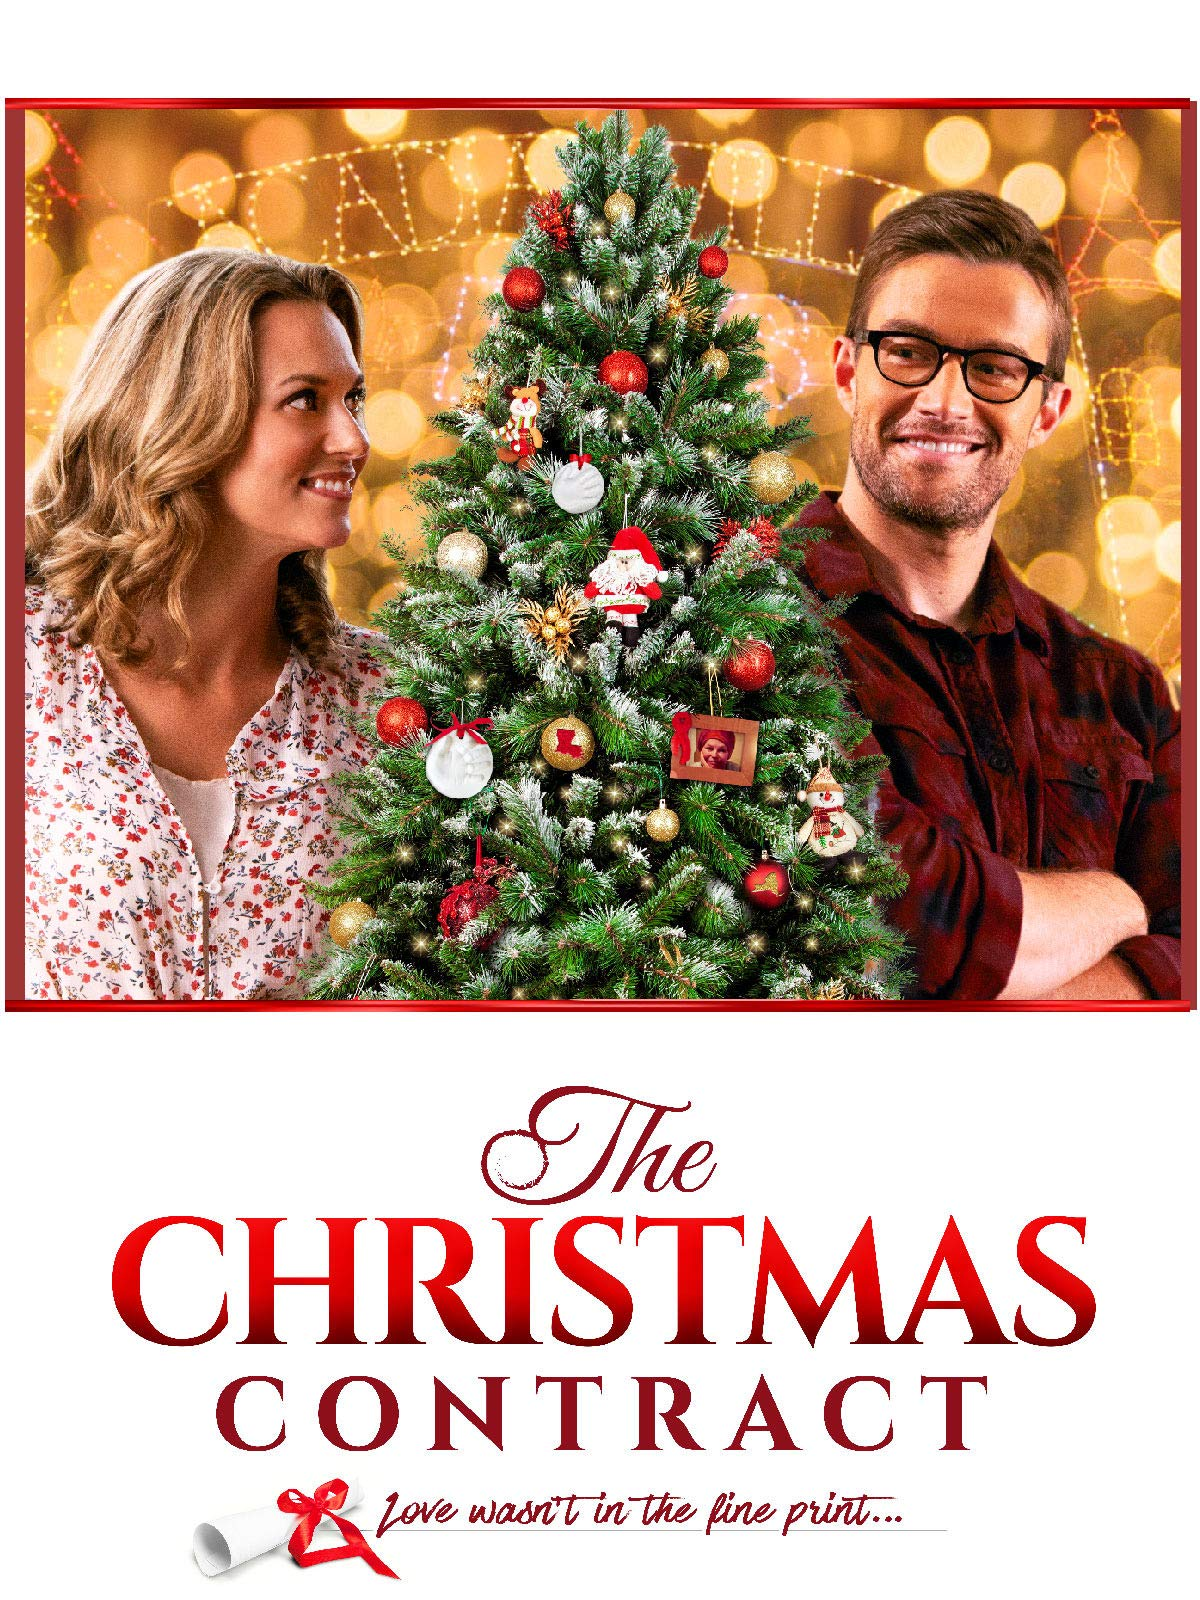 The Christmas Contract 2021 Cast